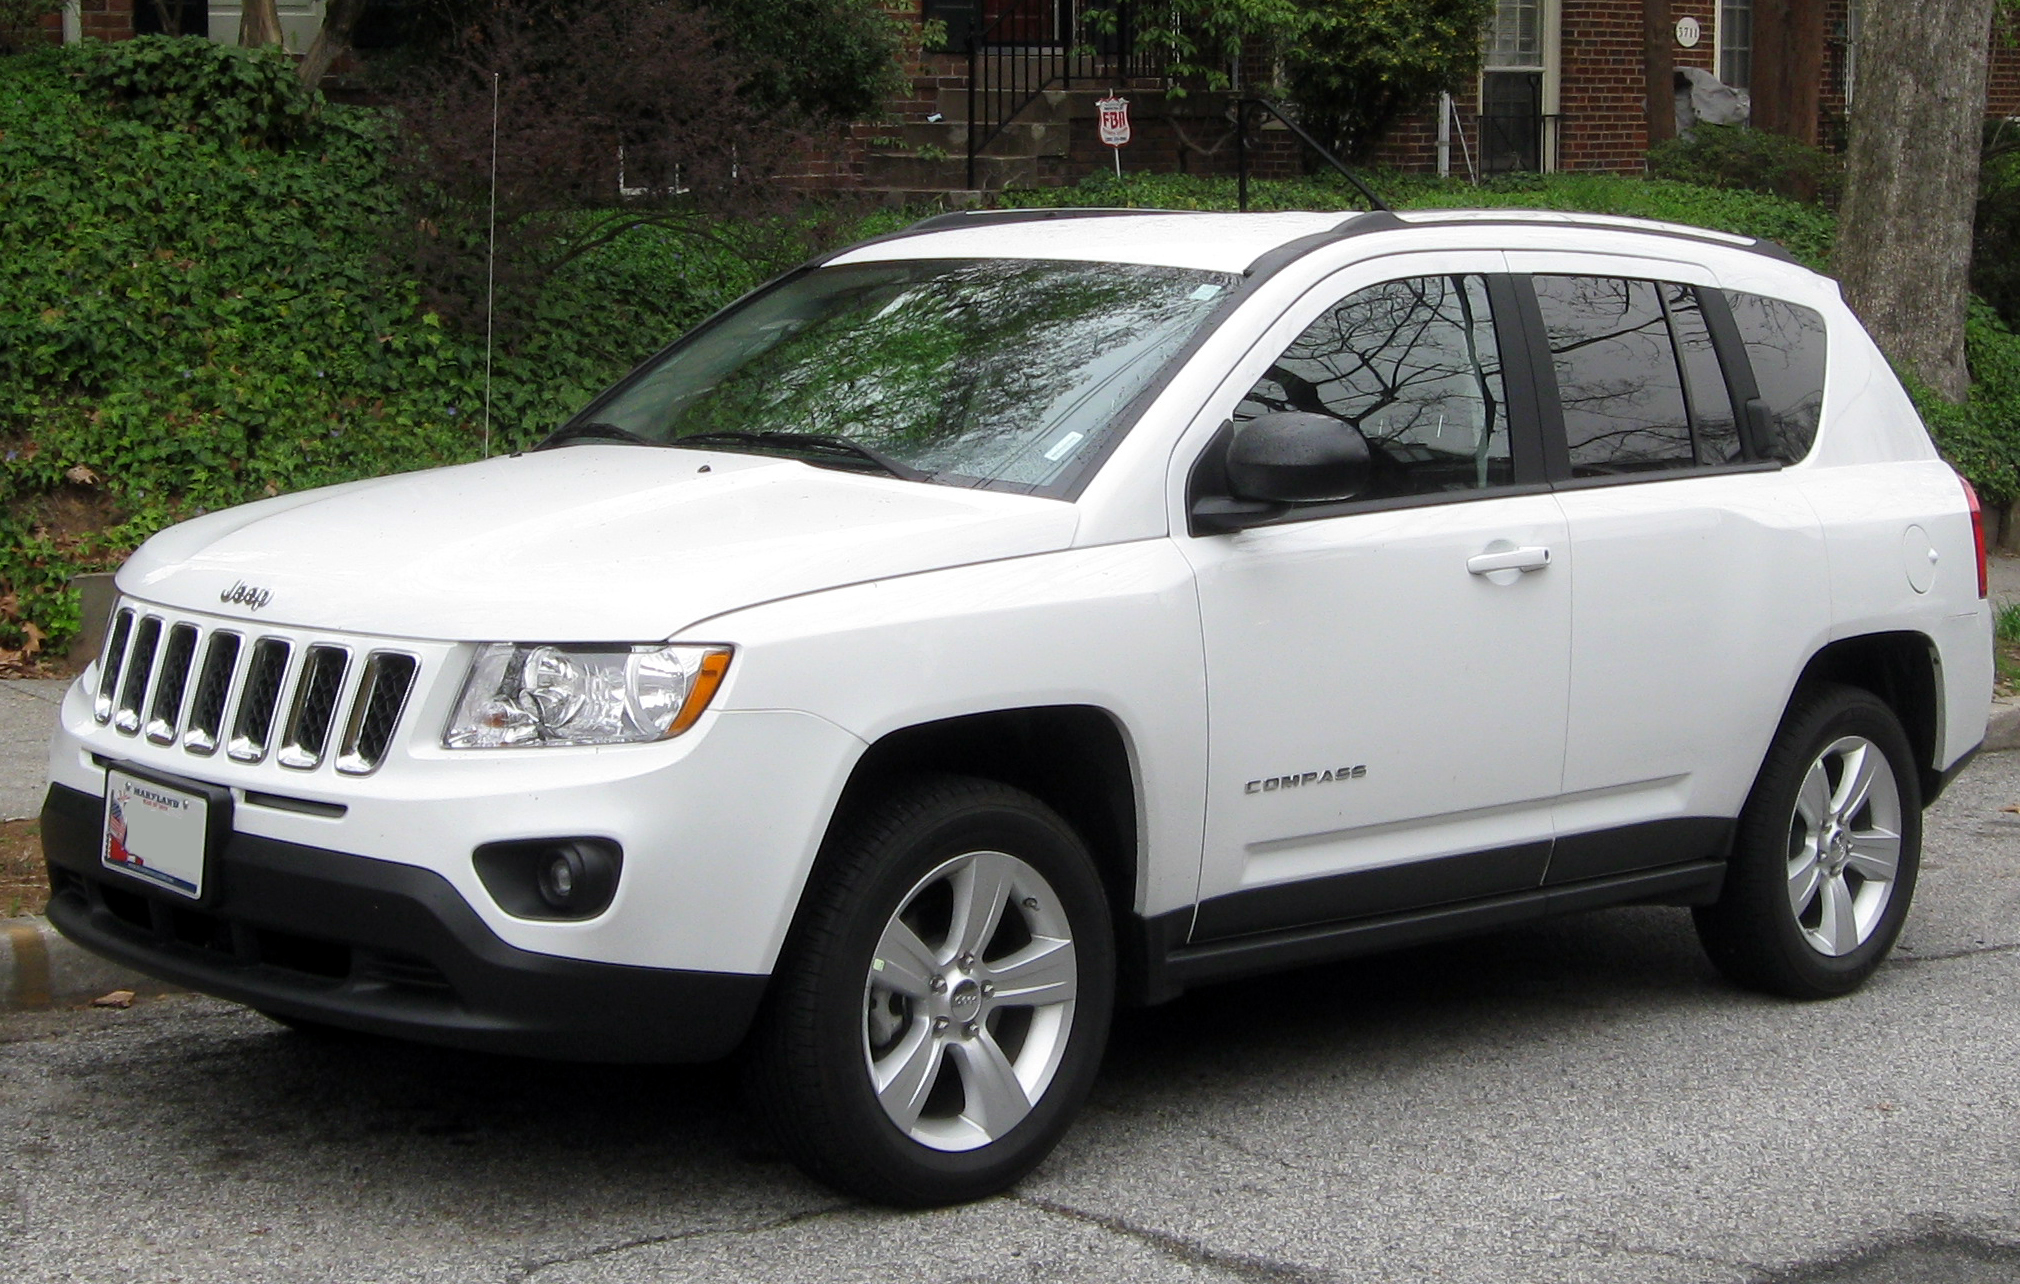 file jeep compass 03 21 2012 2 jpg wikimedia commons. Black Bedroom Furniture Sets. Home Design Ideas